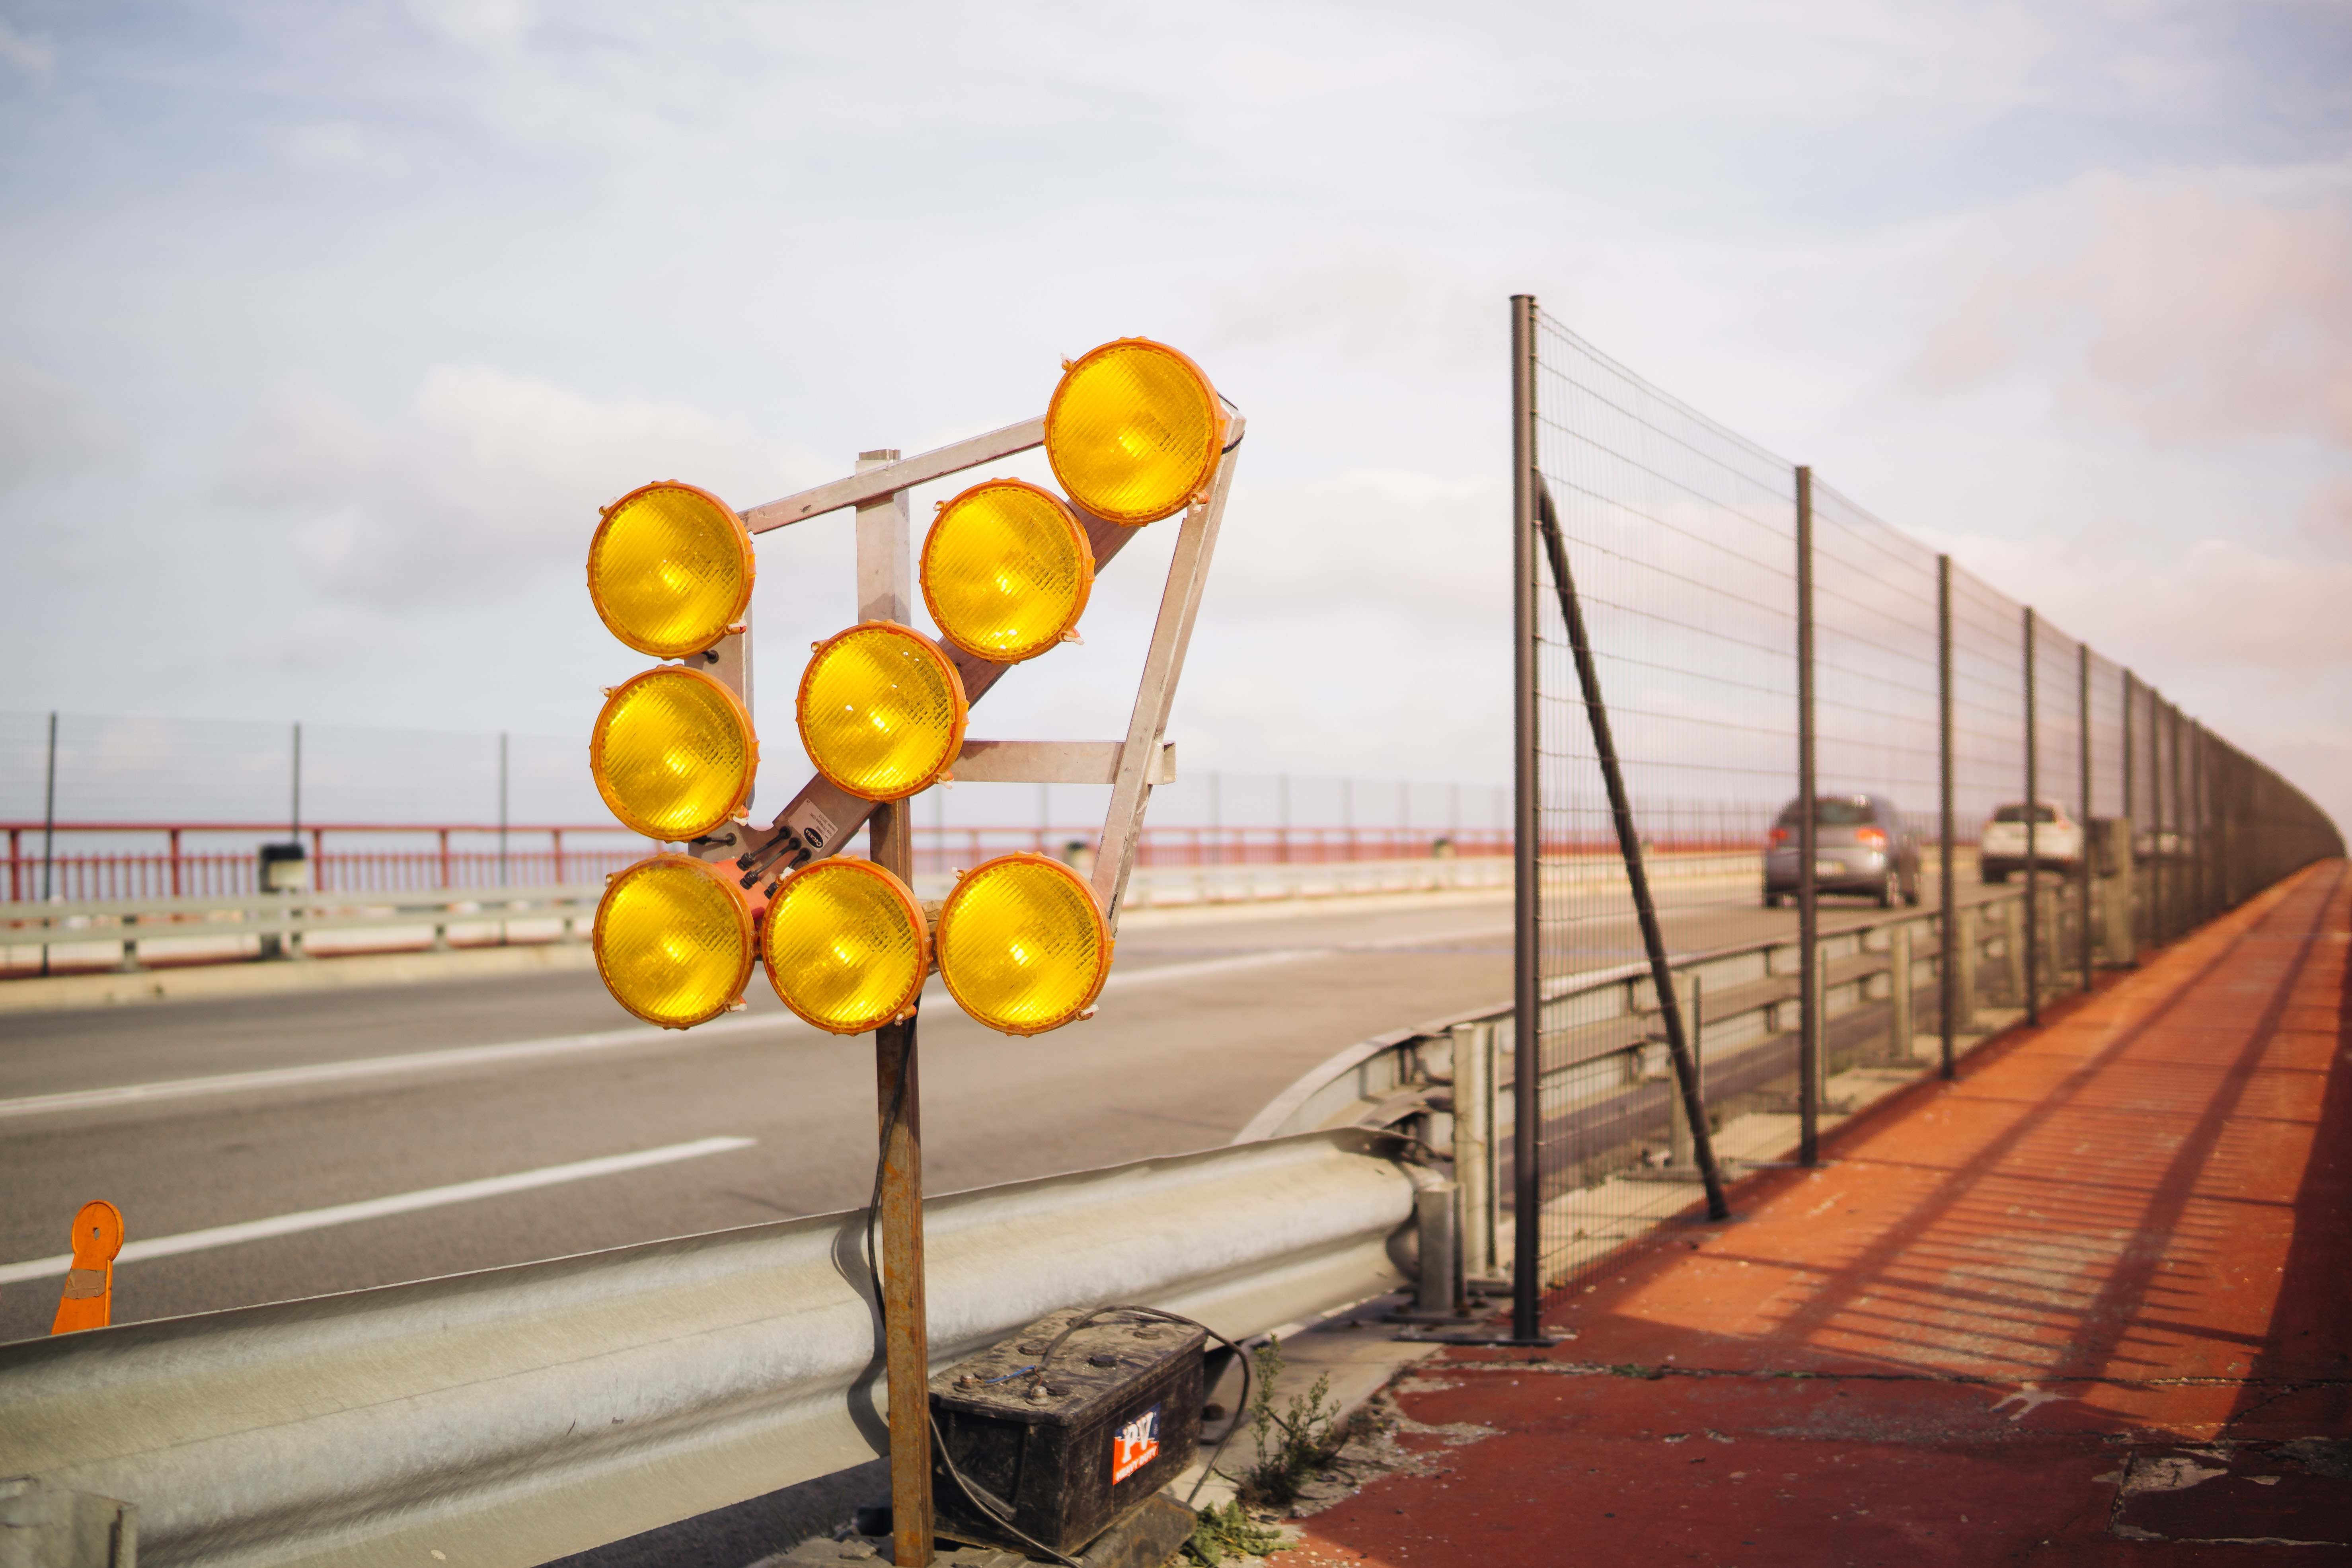 turned of yellow road lights